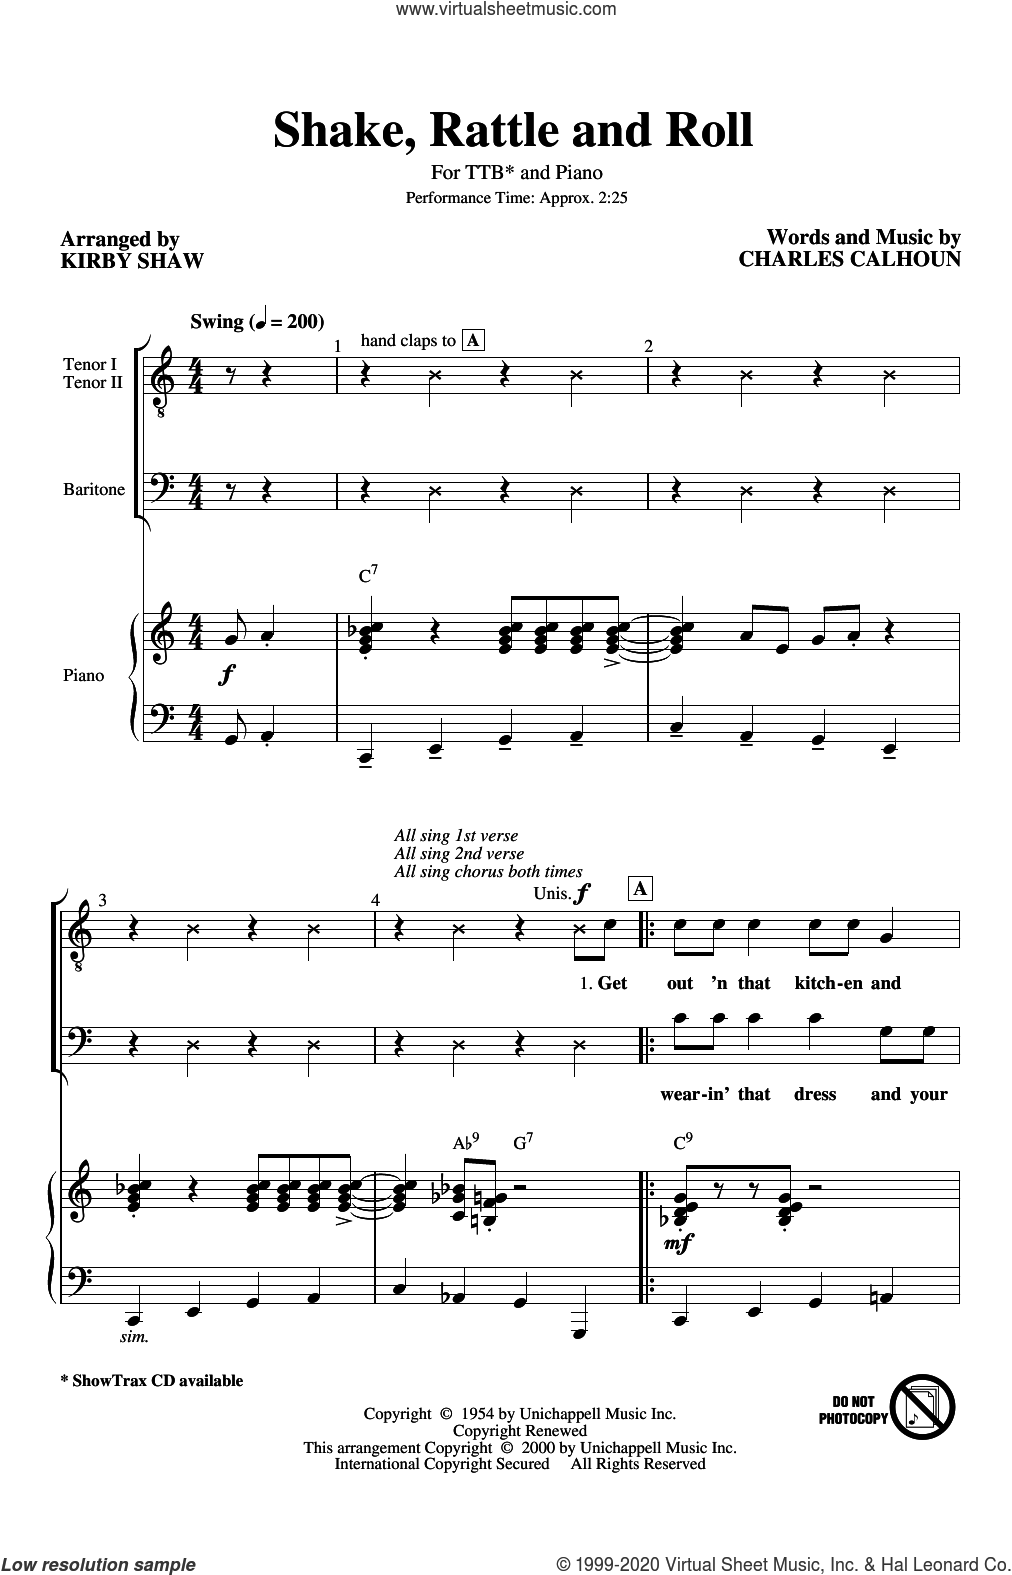 Shake, Rattle And Roll (arr. Kirby Shaw) sheet music for choir (TTBB: tenor, bass) by Bill Haley & His Comets, Kirby Shaw and Charles Calhoun, intermediate skill level